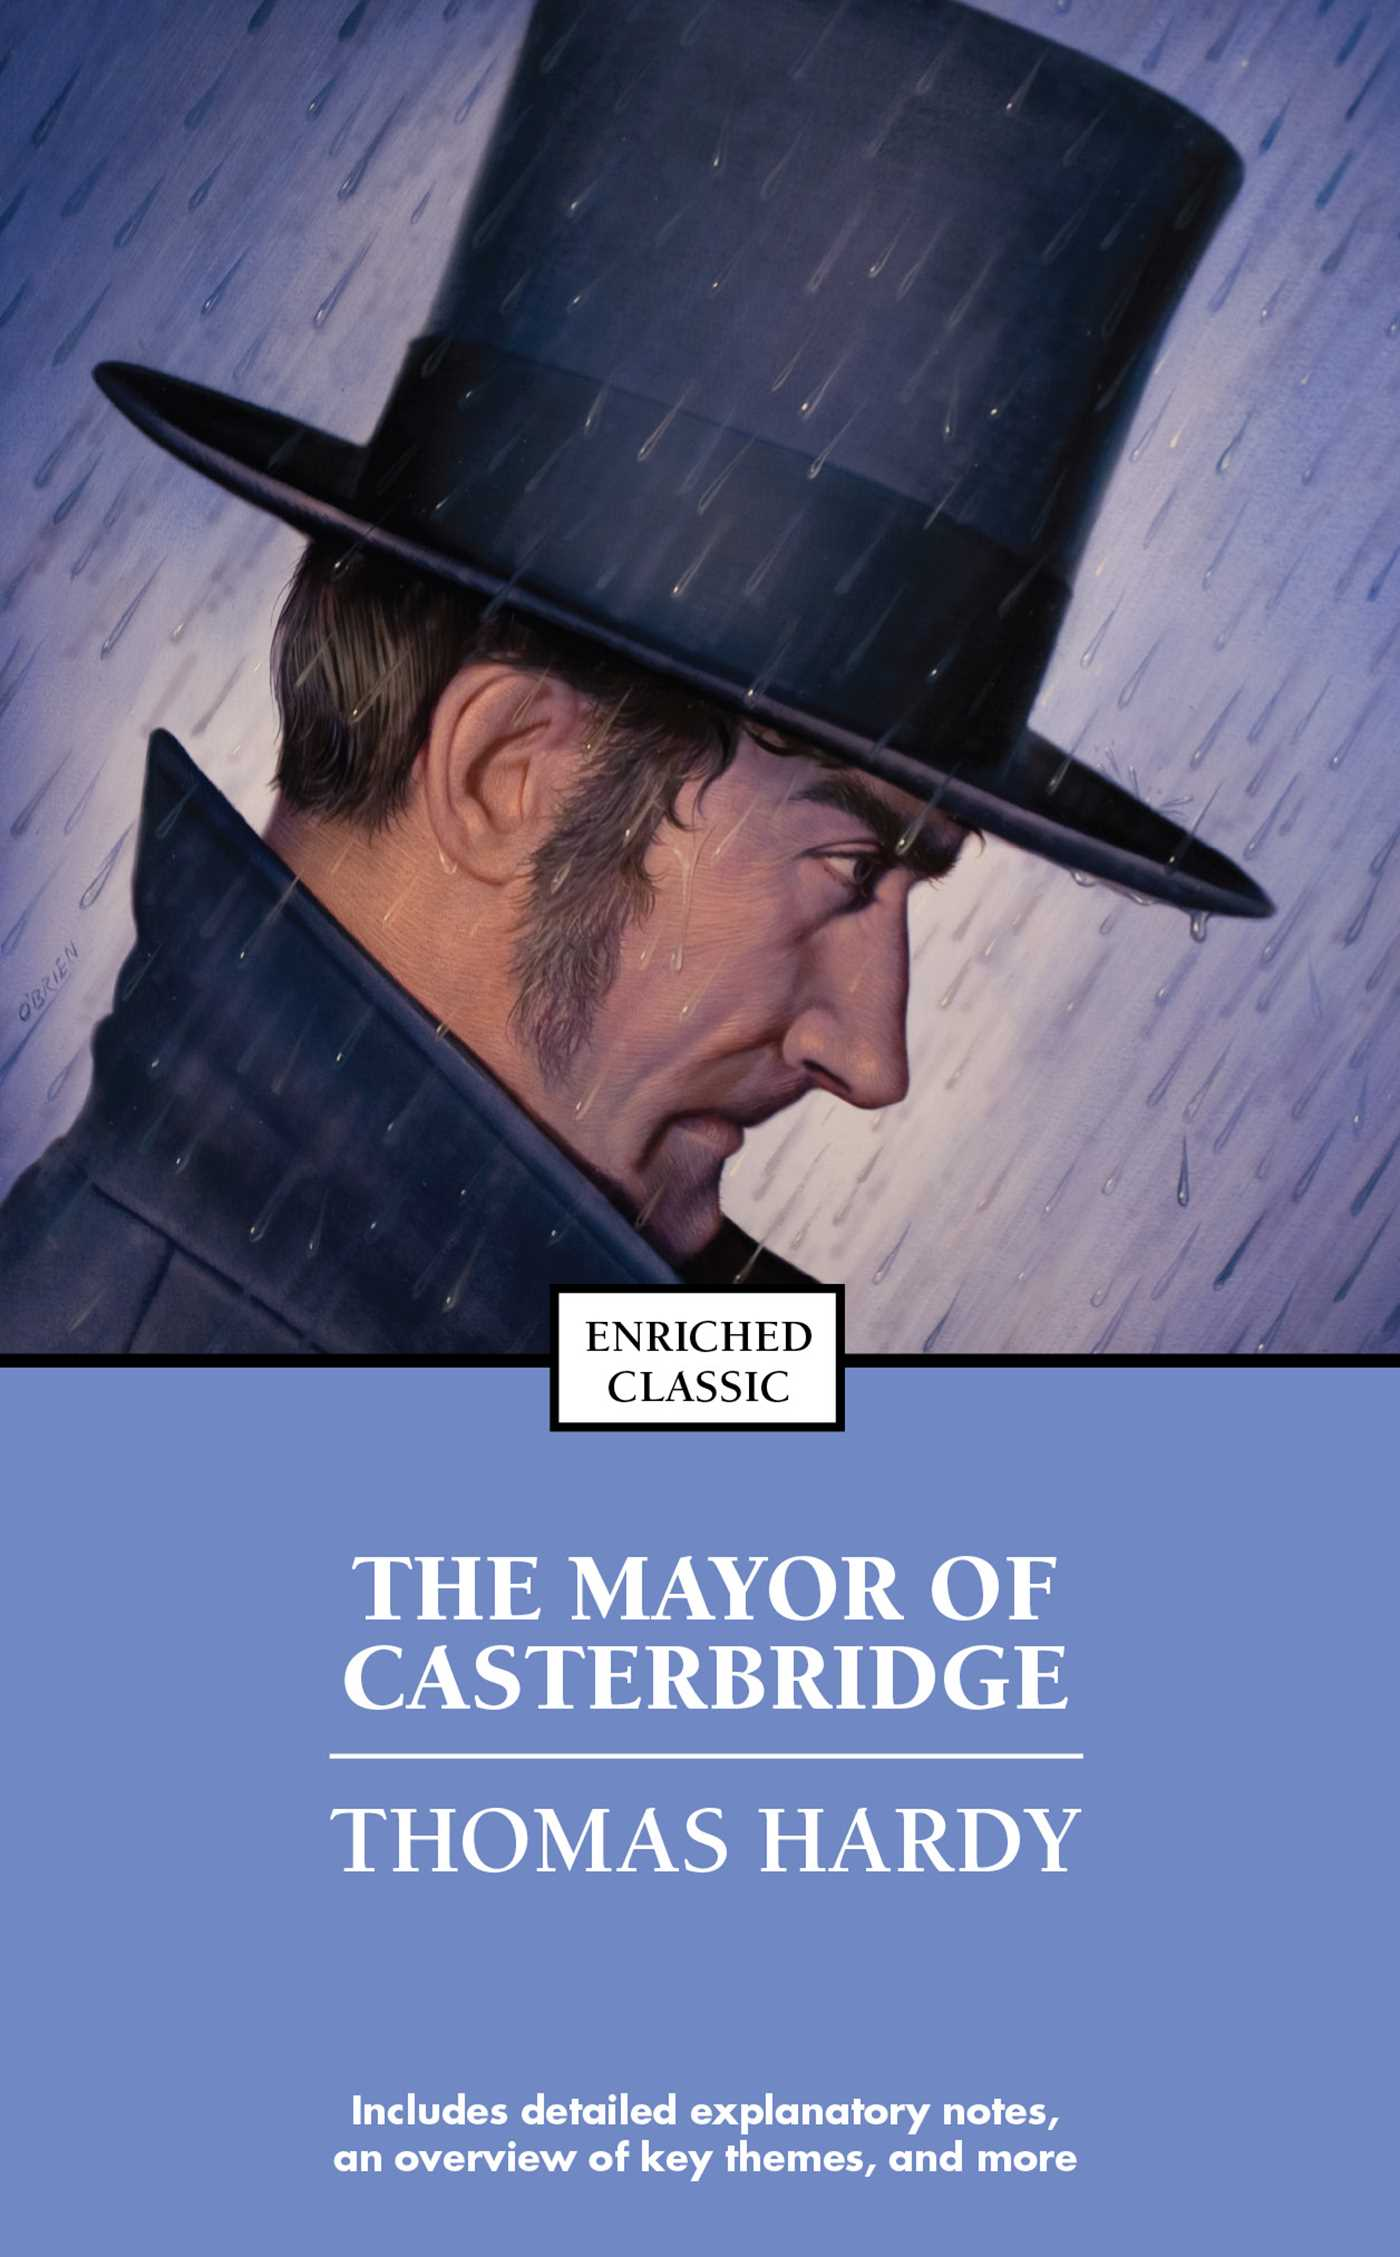 an analysis of thomas hardys novel the mayor of casterbridge Essay about analysis of thomas hardy´s the mayor of casterbridge - thomas hardy (1840-1928), native to dorchester, england, was a novelist and poet that spent the.